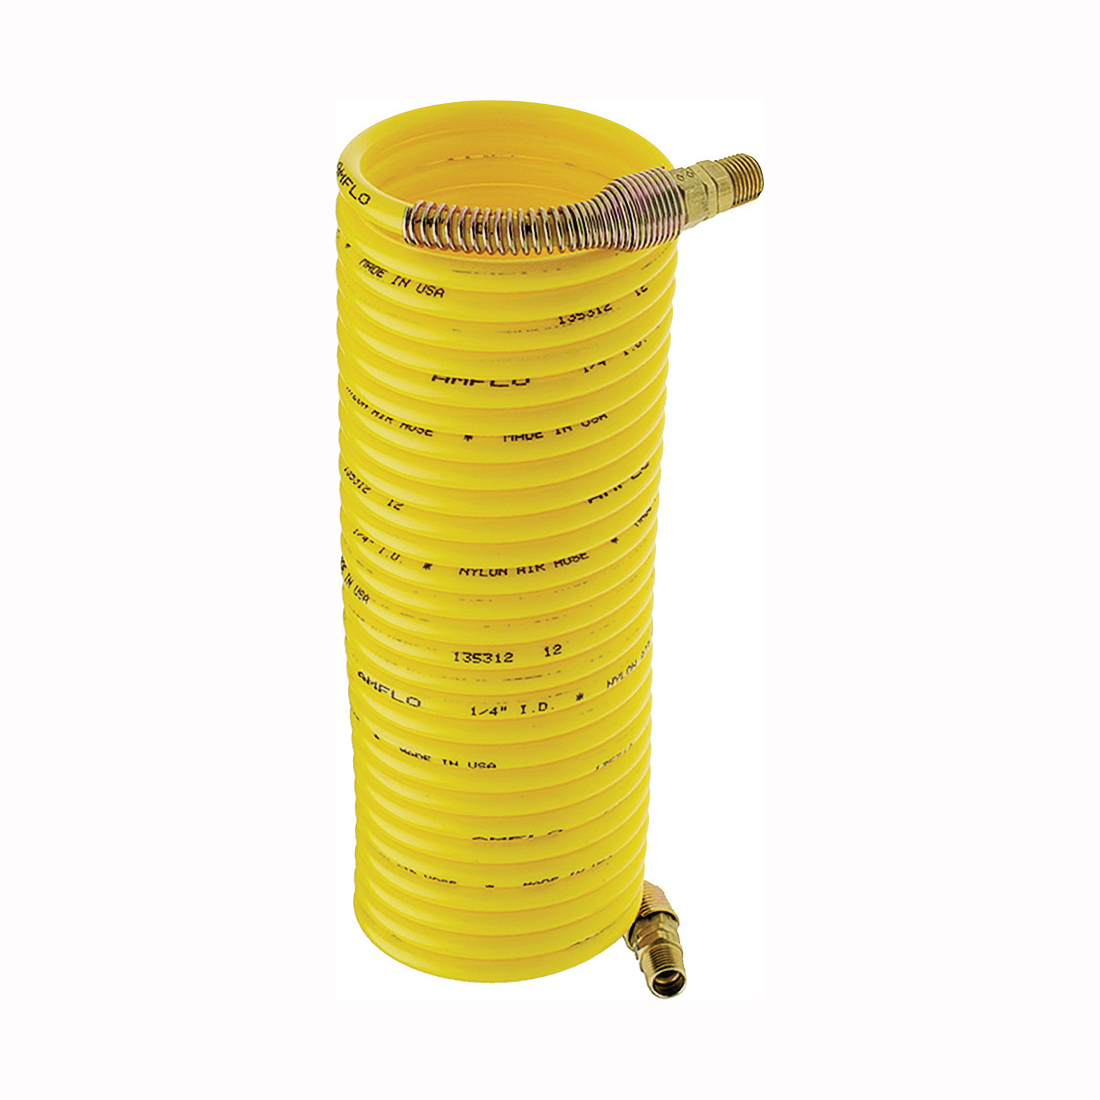 Picture of Amflo 4-25E-RET Air Hose, 1/4 in OD, 25 ft L, MNPT, 200 psi Pressure, Nylon, Yellow